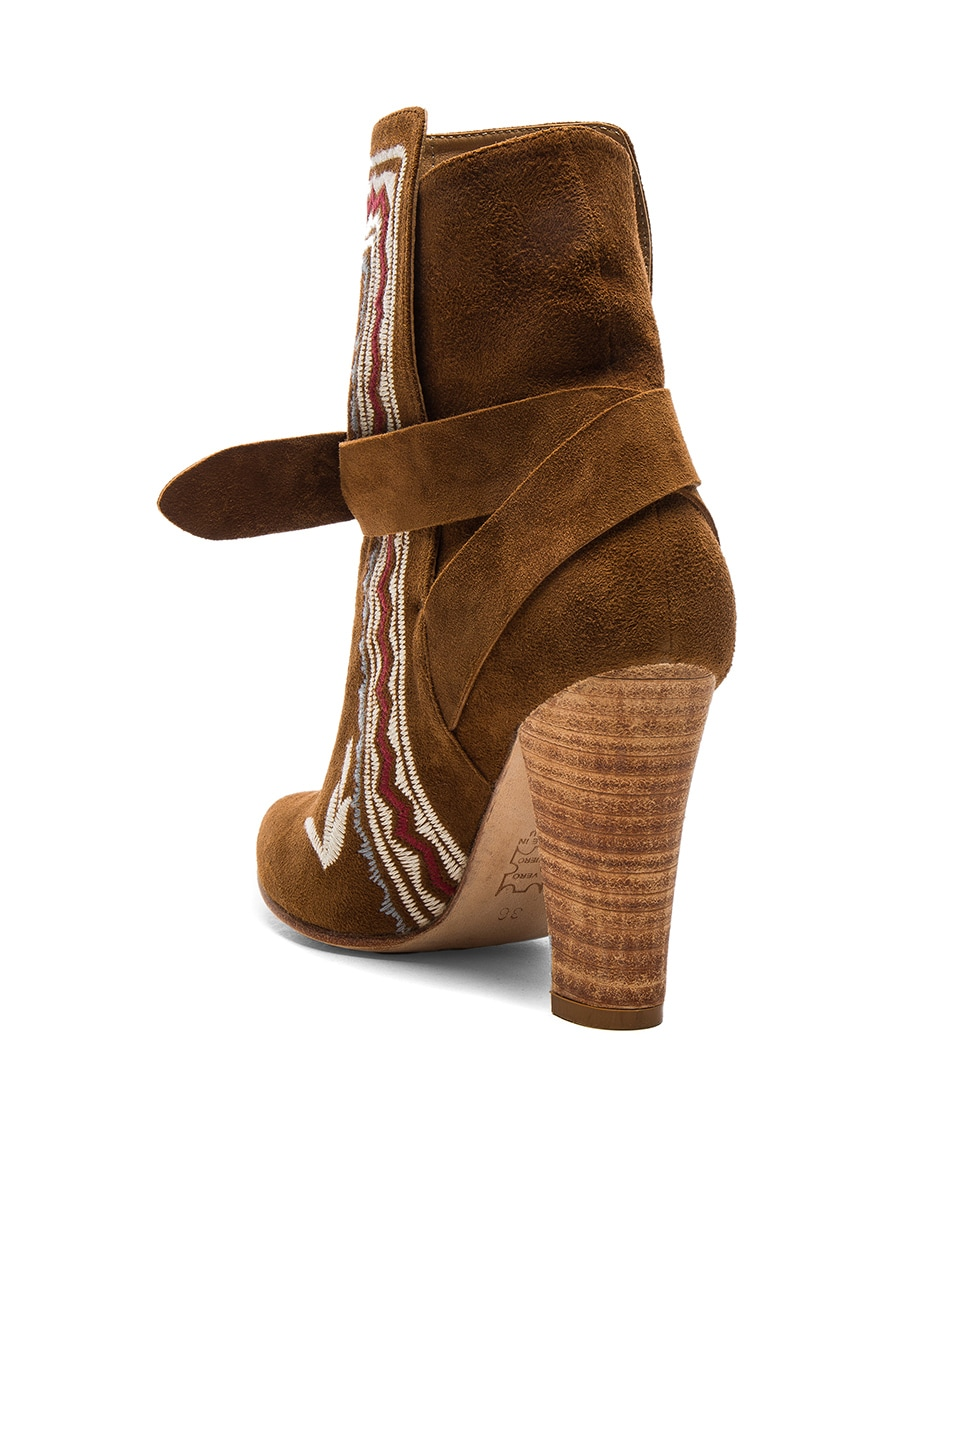 Image 3 of Ulla Johnson Embroidered Suede Aggie Booties in Saddle Suede